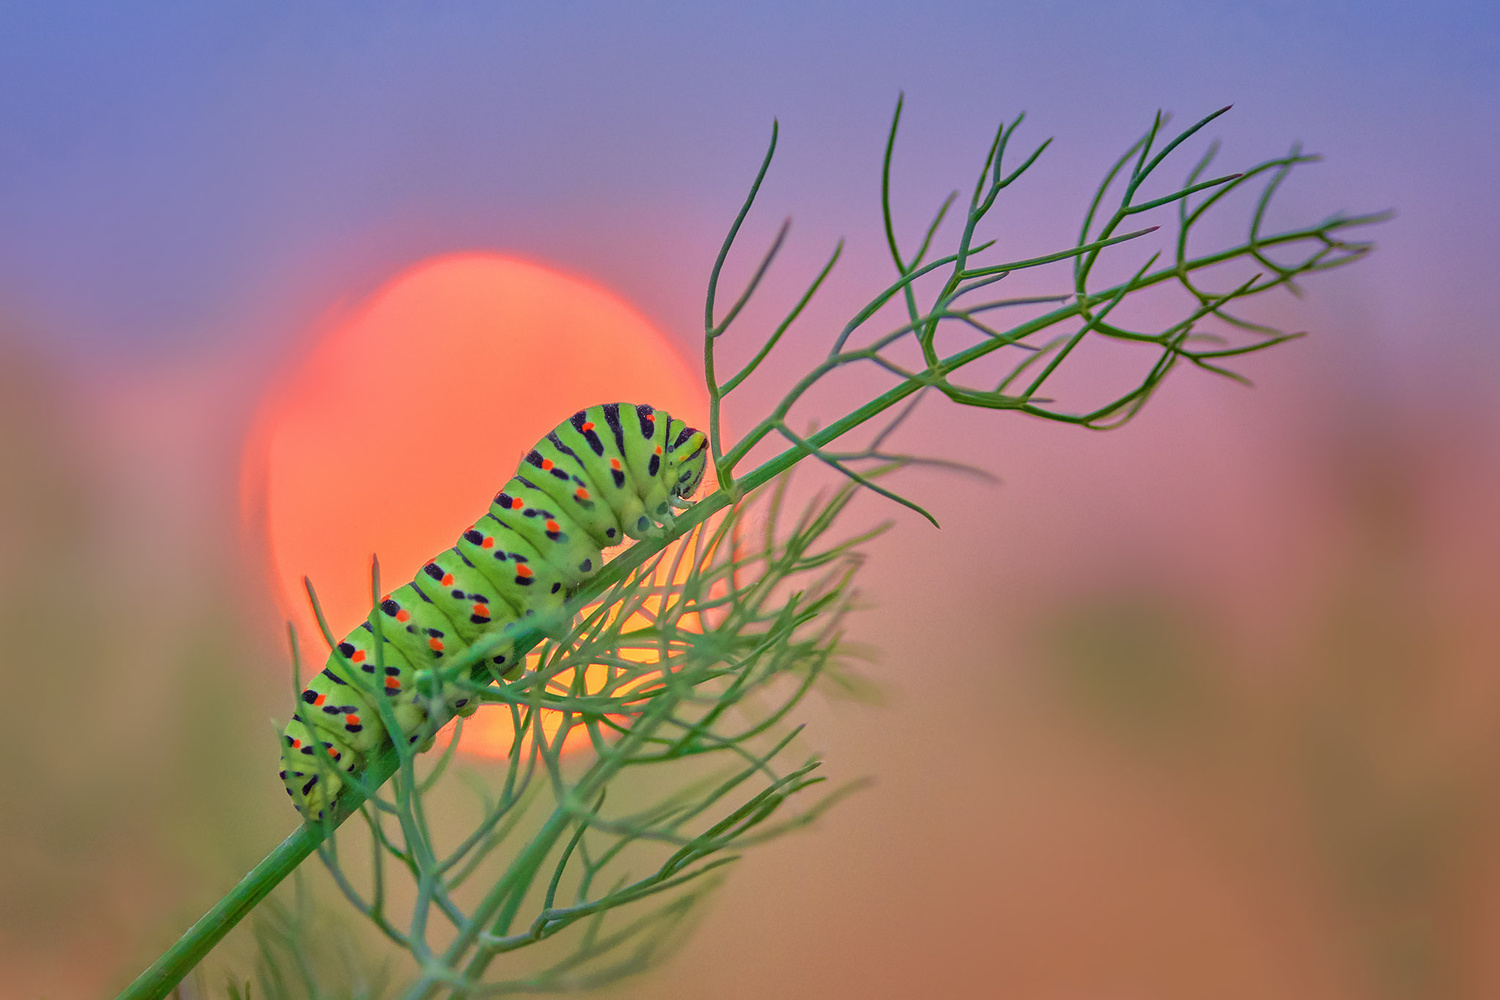 Sunset caterpillar by Pierre Anquet